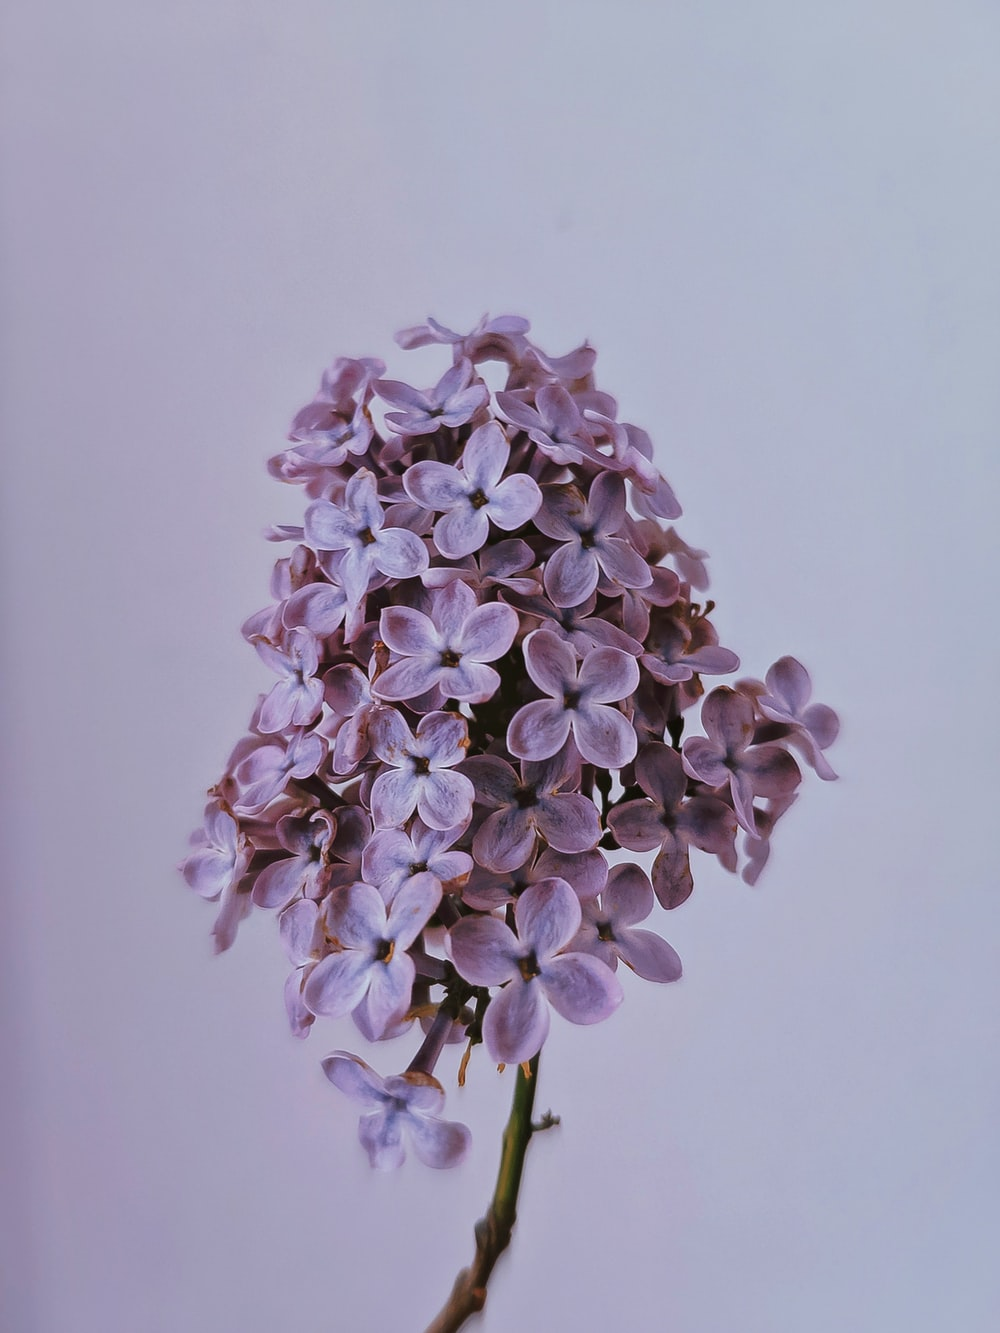 purple and white flower in close up photography